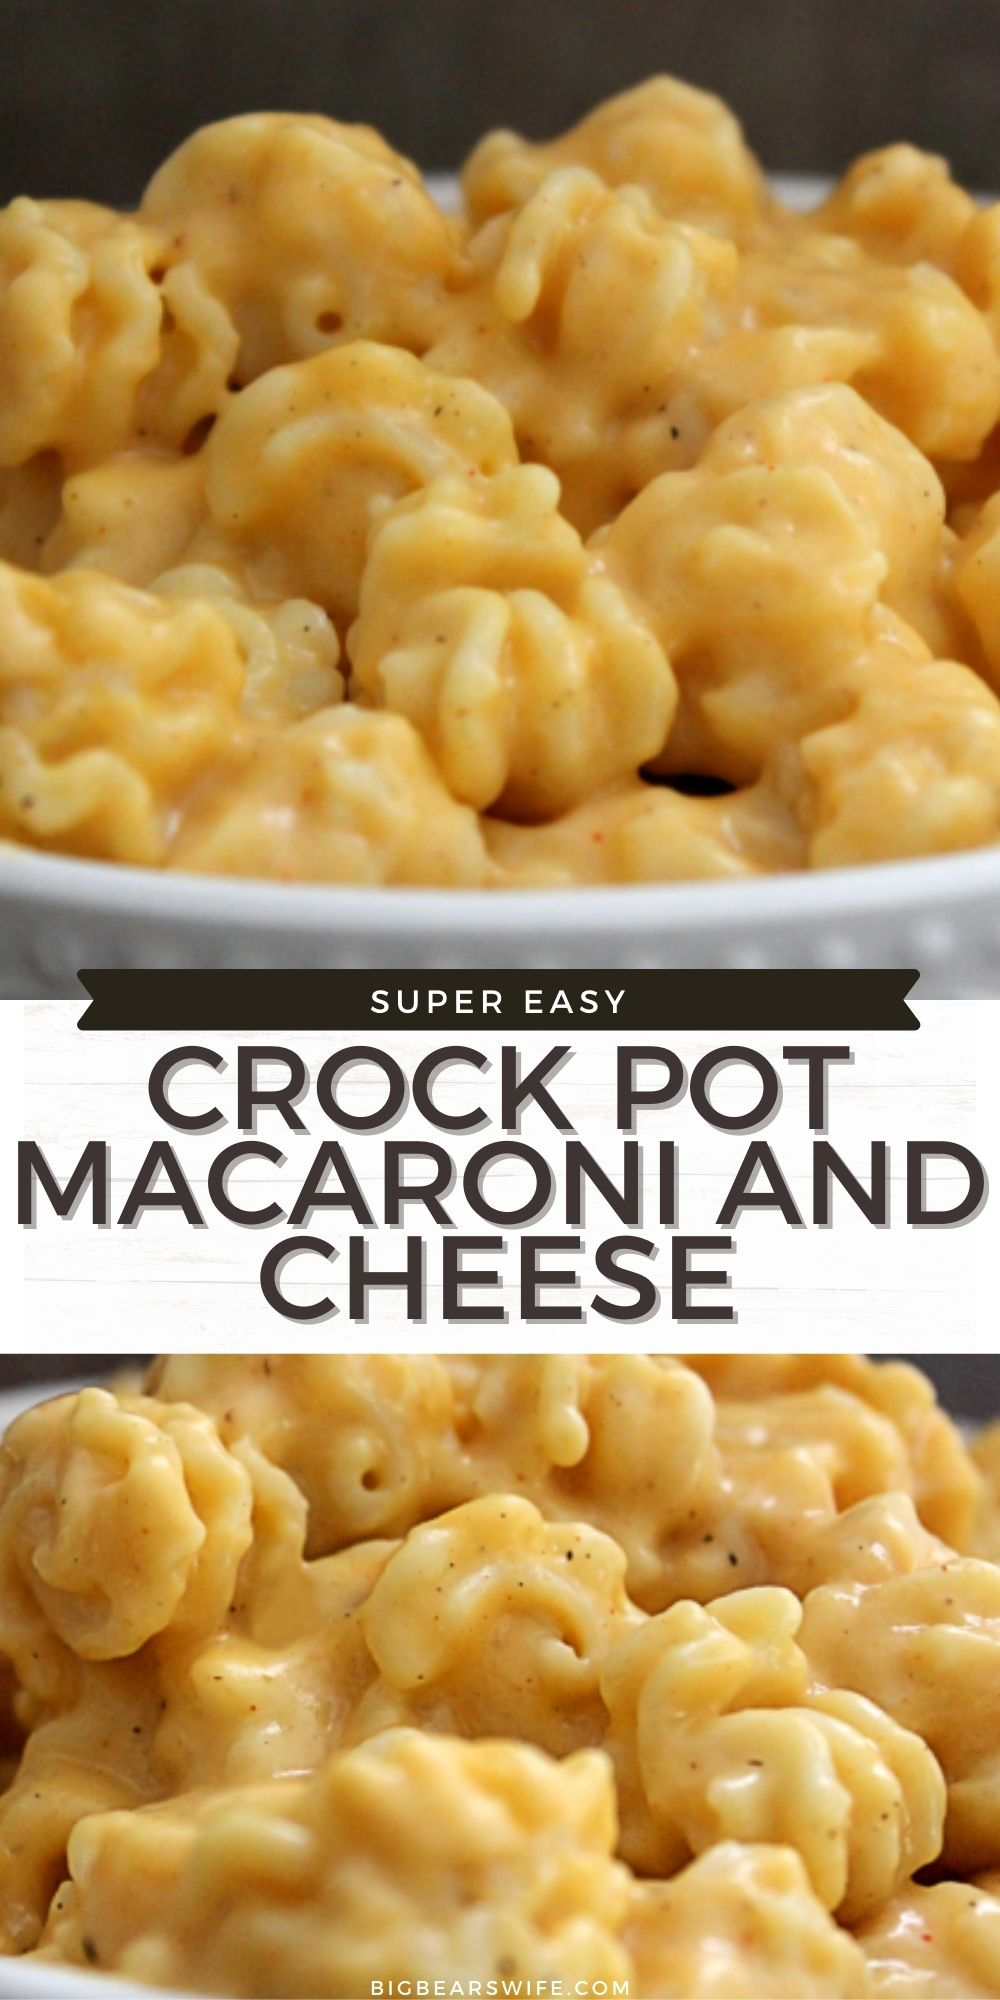 Did you know that you can make Macaroni and Cheese in the slow cooker? You CAN! It's so easy with my favorite Crock Pot Macaroni and Cheese recipe!  via @bigbearswife